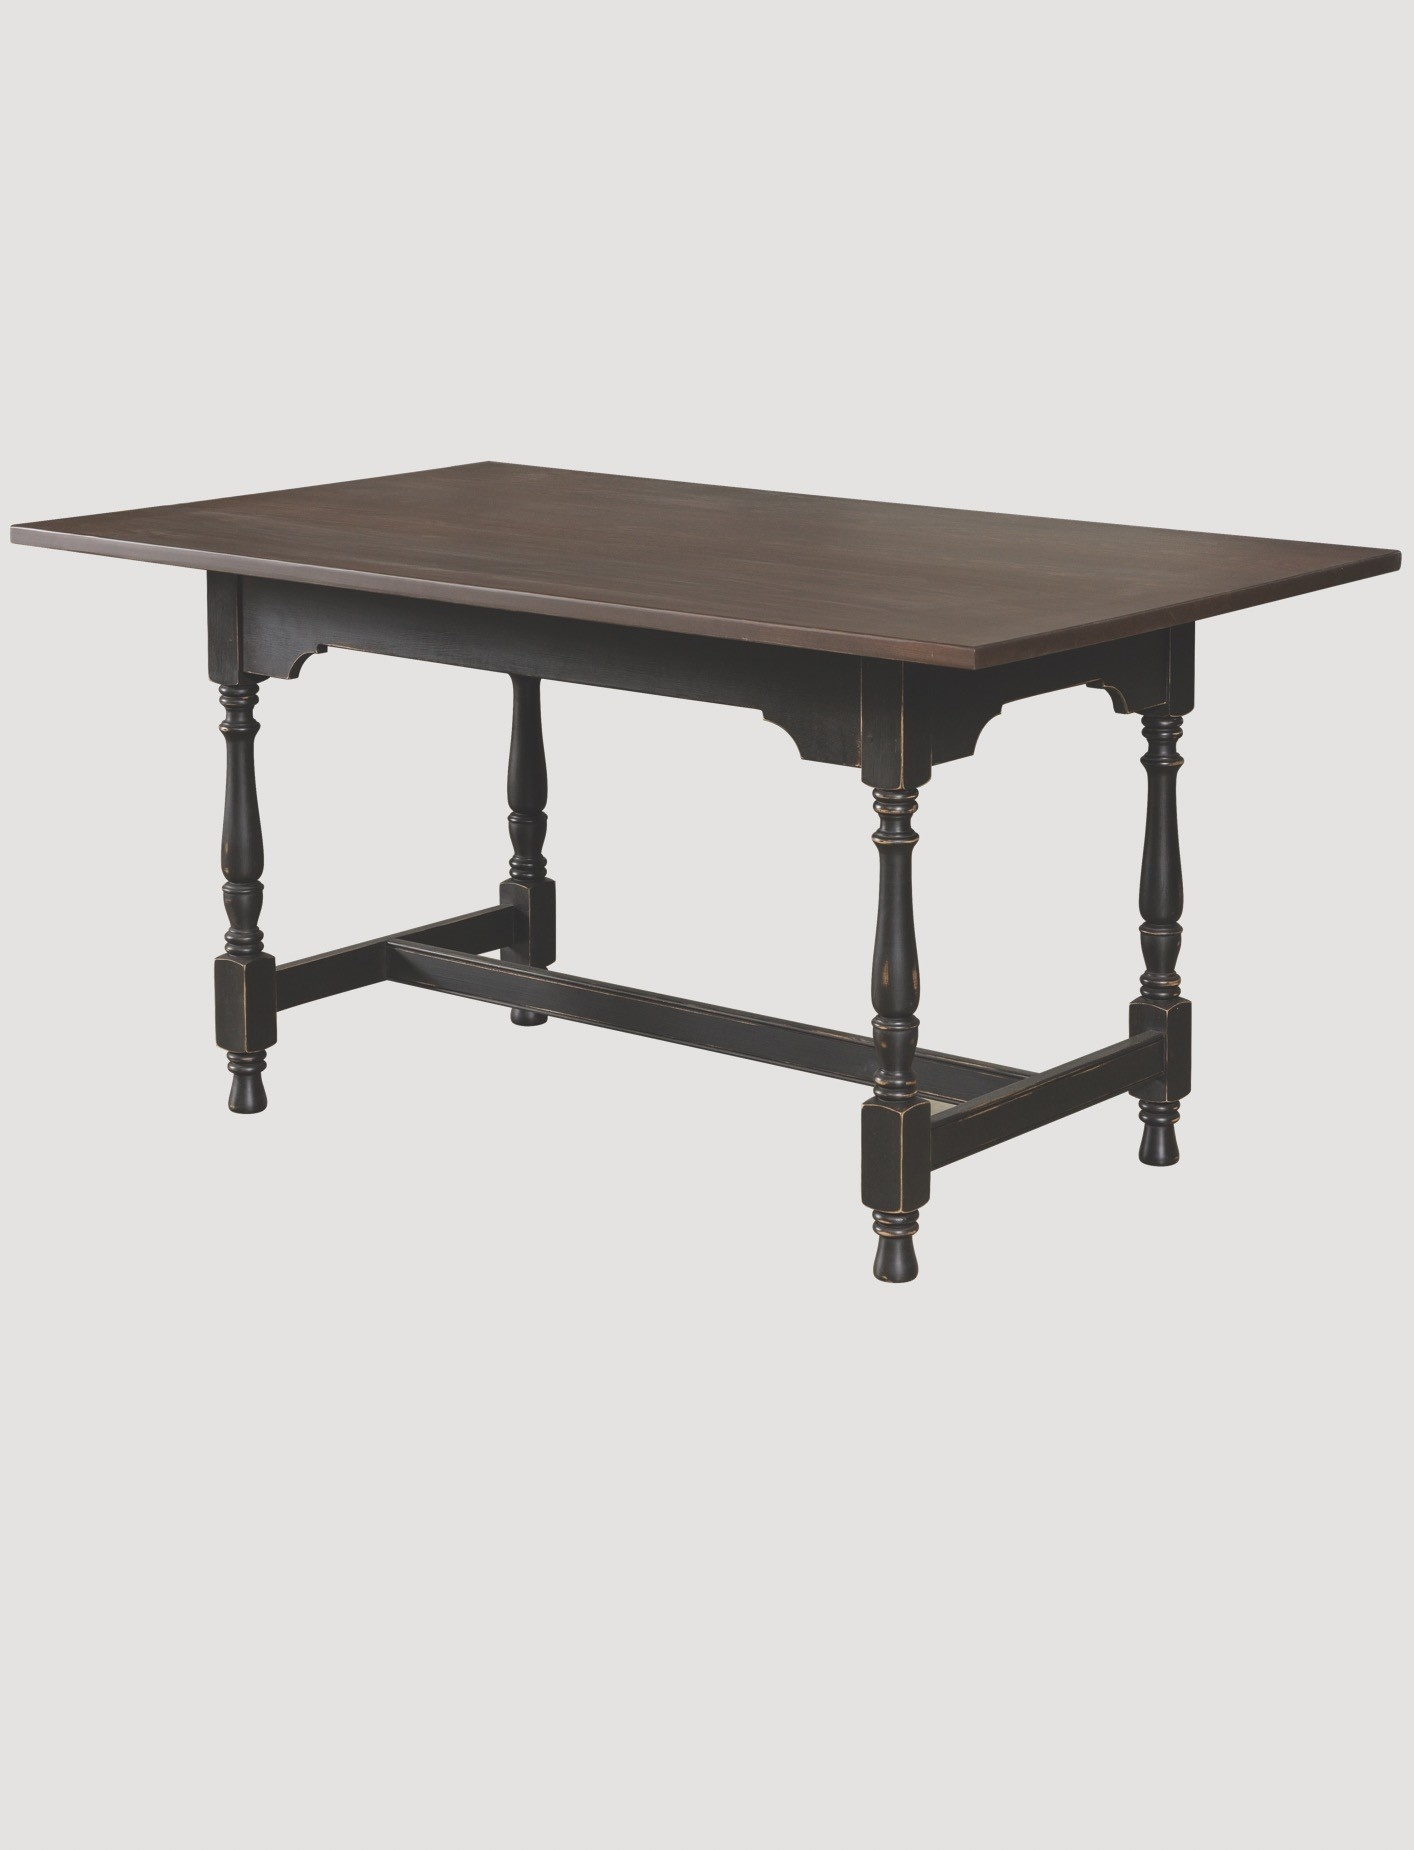 Primitive Designs William & Mary Table Pine Top with Black Rubbed Legs